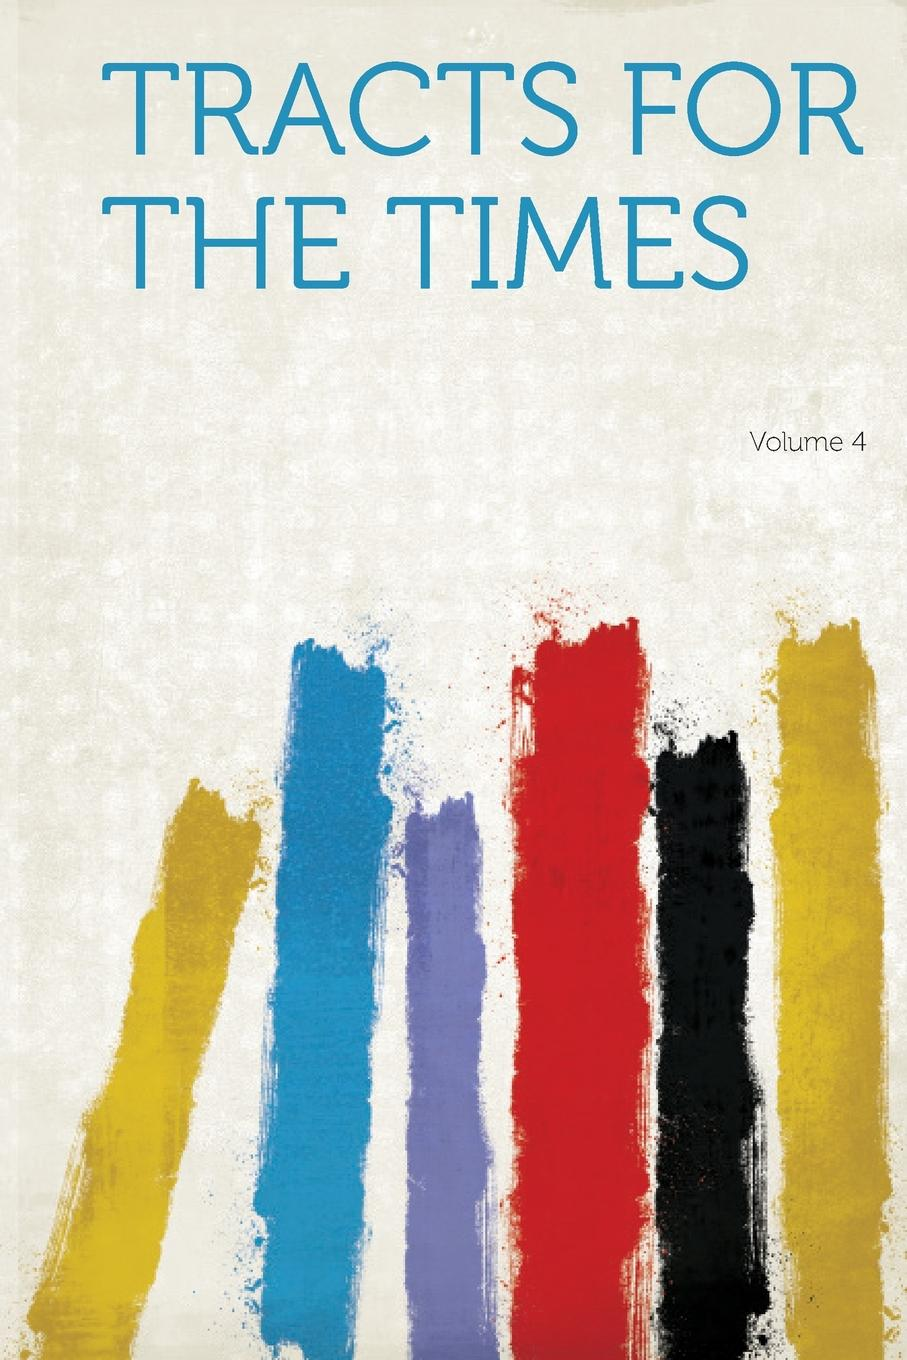 Tracts for the Times Volume 4